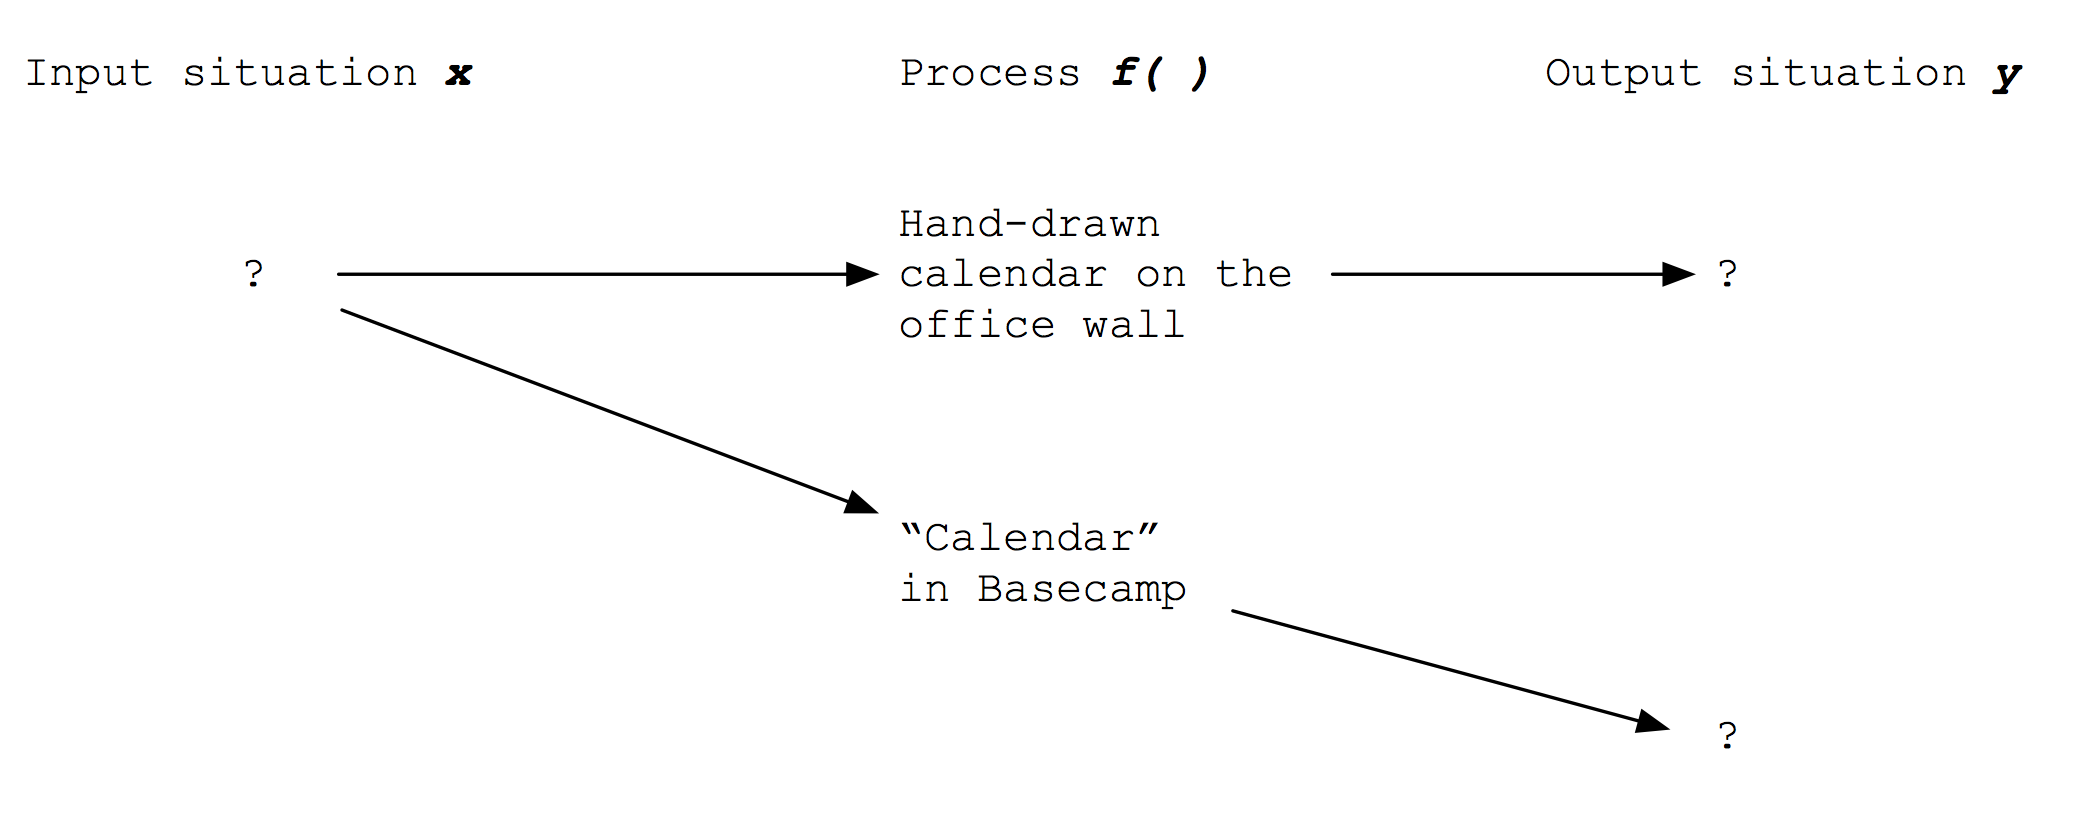 Function they currently use for calendar